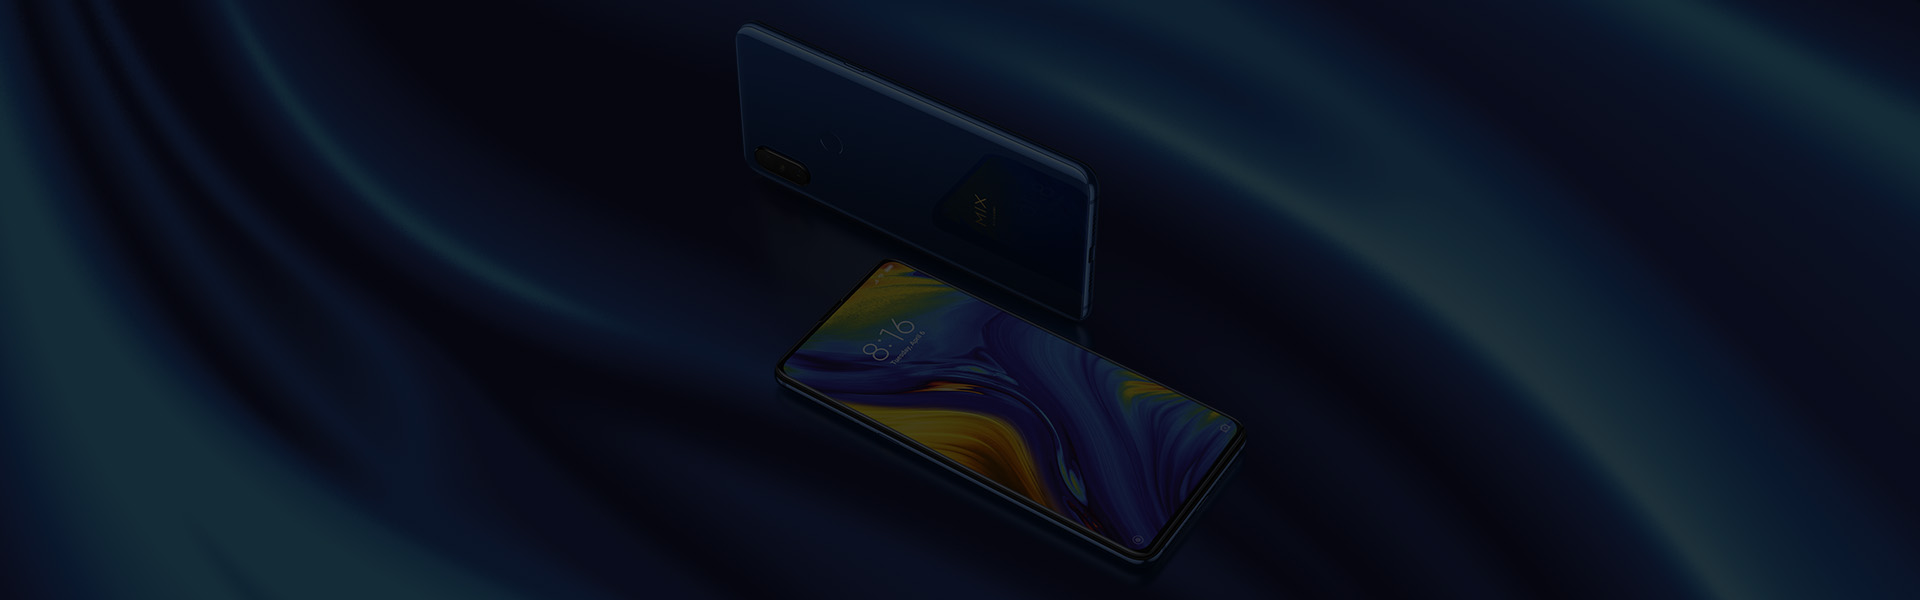 Mi MIX 3 review: The slider phone has arrived